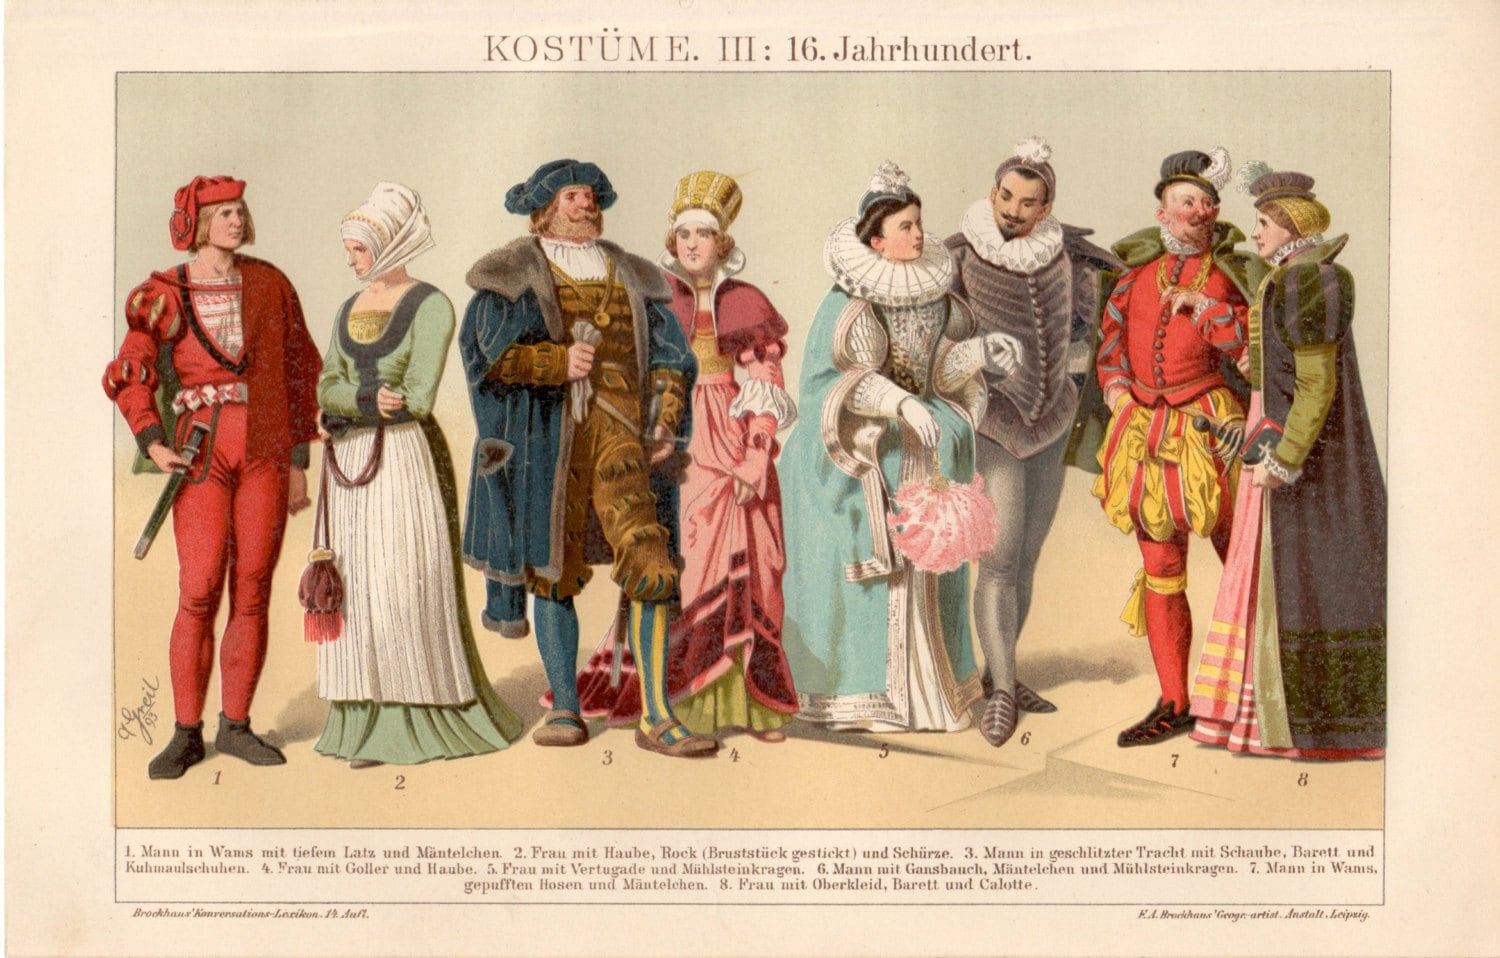 fashion for men and women in the 16th century A fashion in men's clothing for the dark furs sable special nightwear only became common in the 16th century —yet some married women wore their chemises to bed.